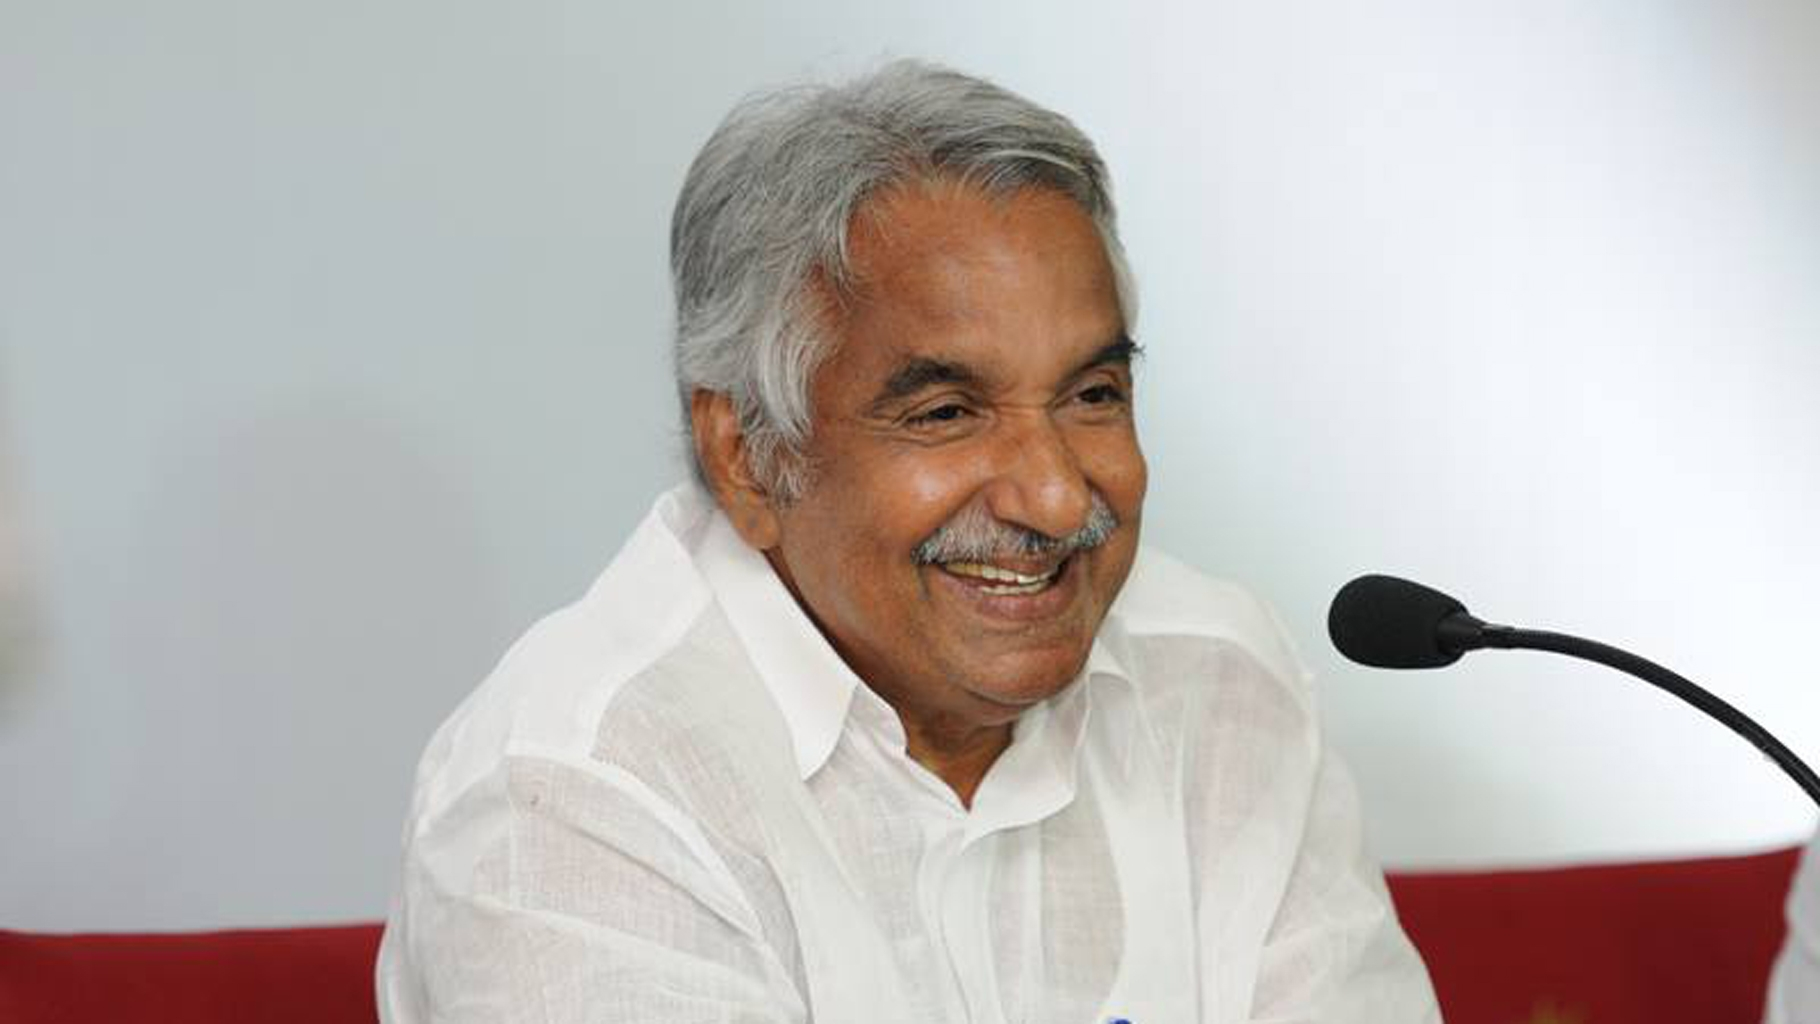 Oommen chandy funny photos 13 Lessons to Teach Your Child About Digital Photography